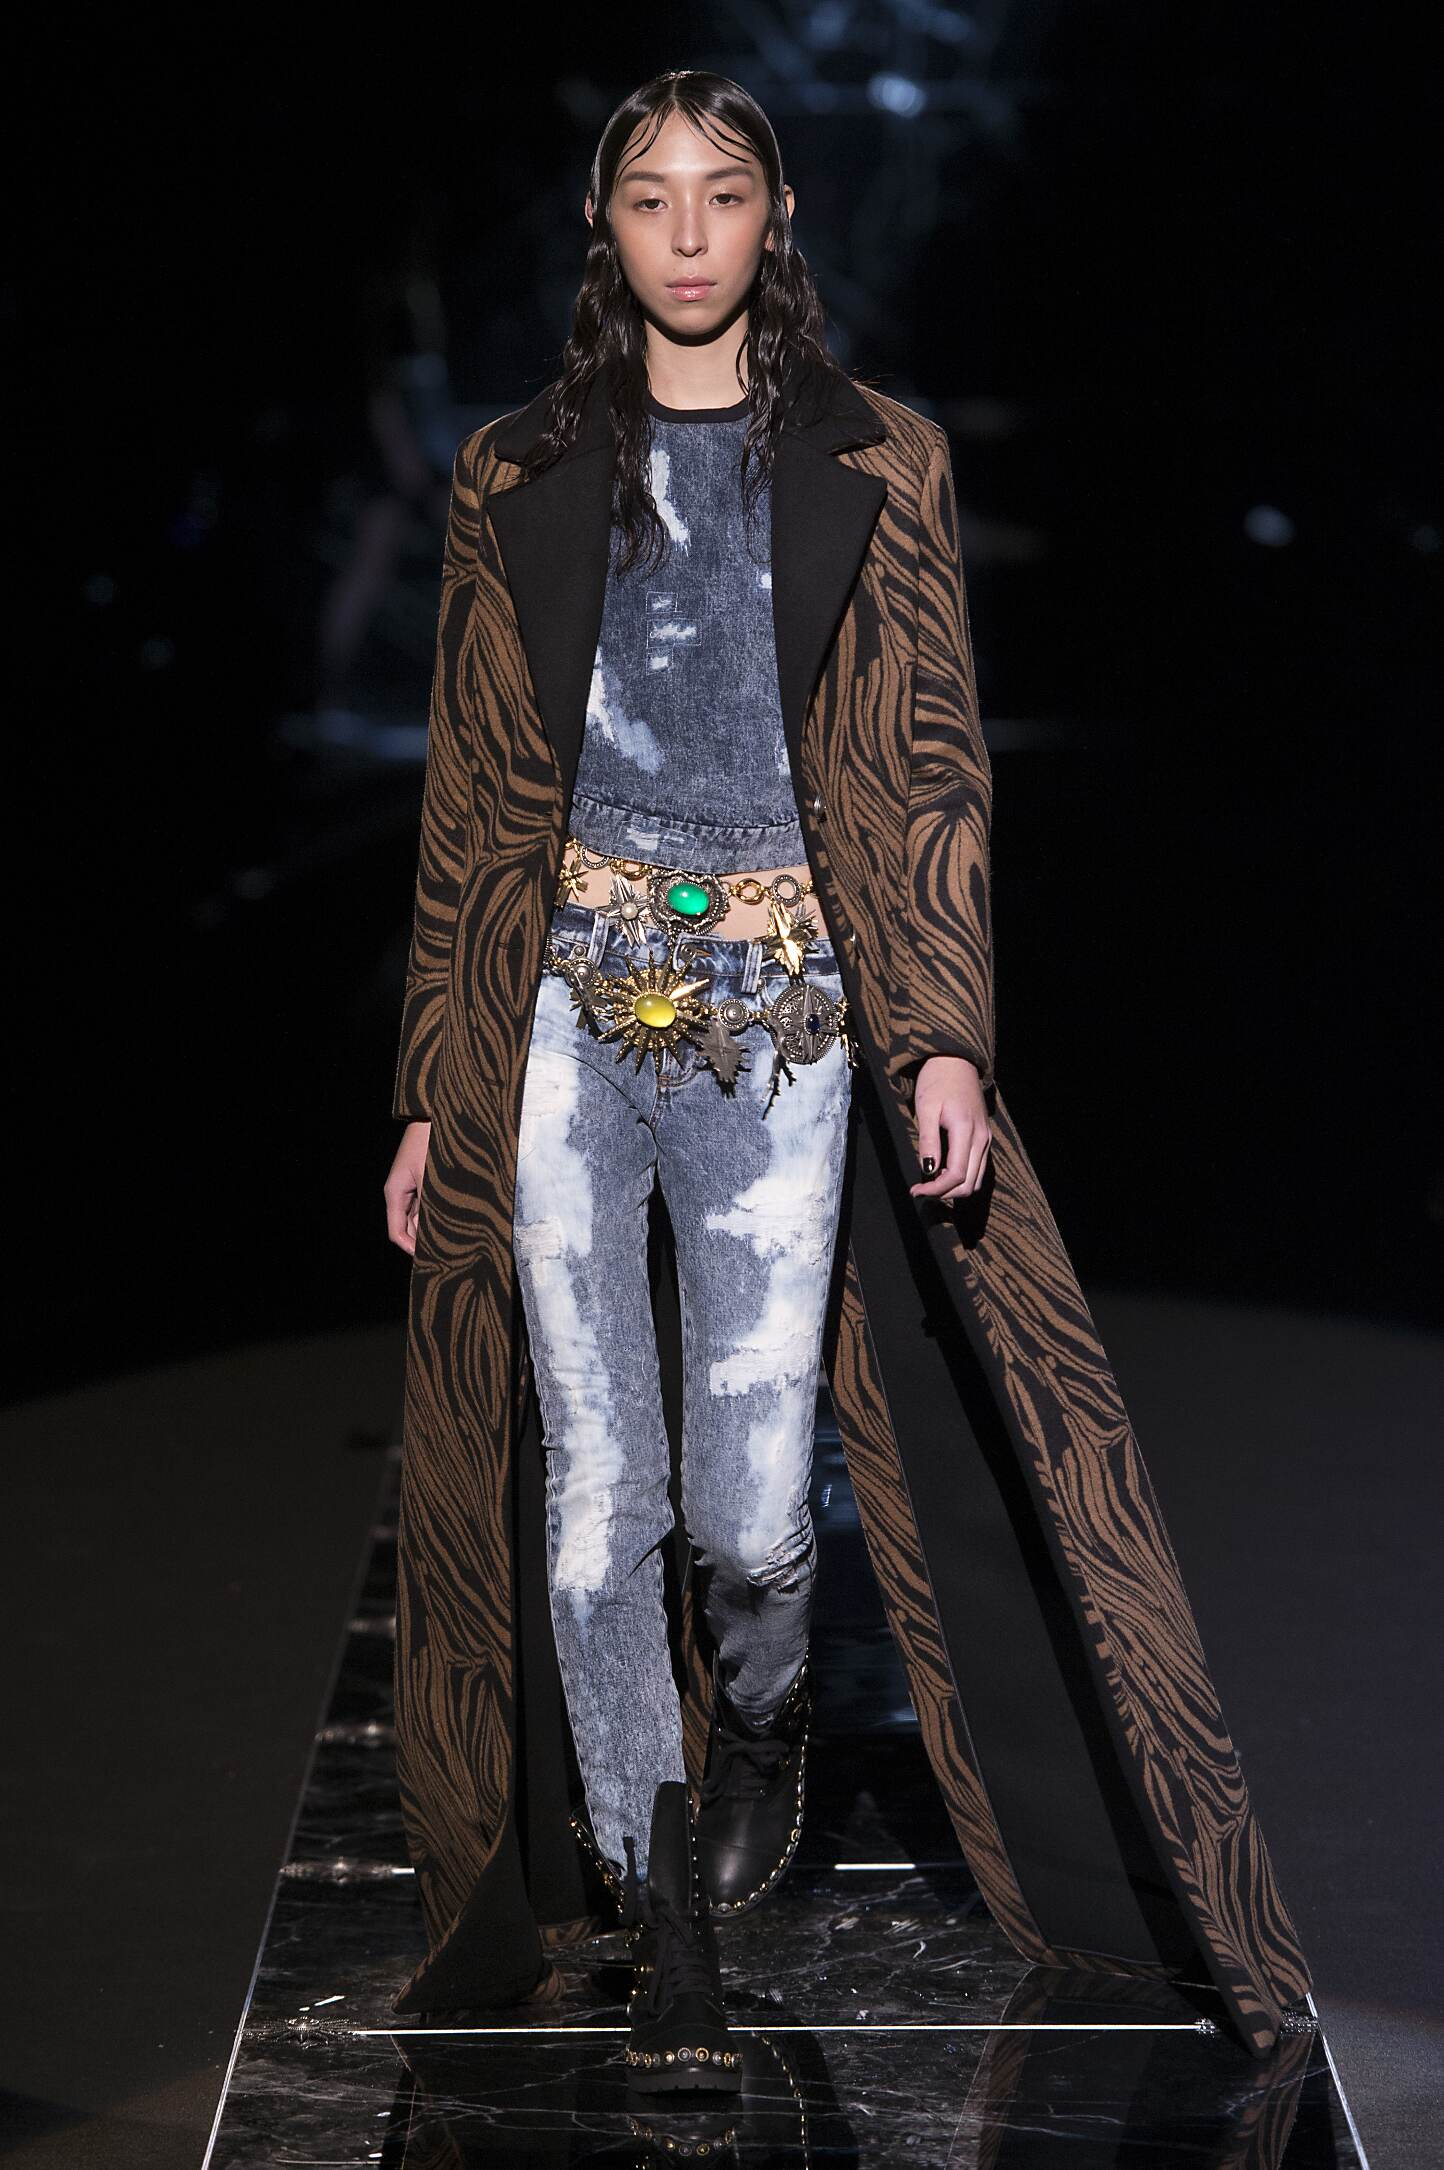 Fausto Puglisi Collection Fashion Show FW 2015 2016